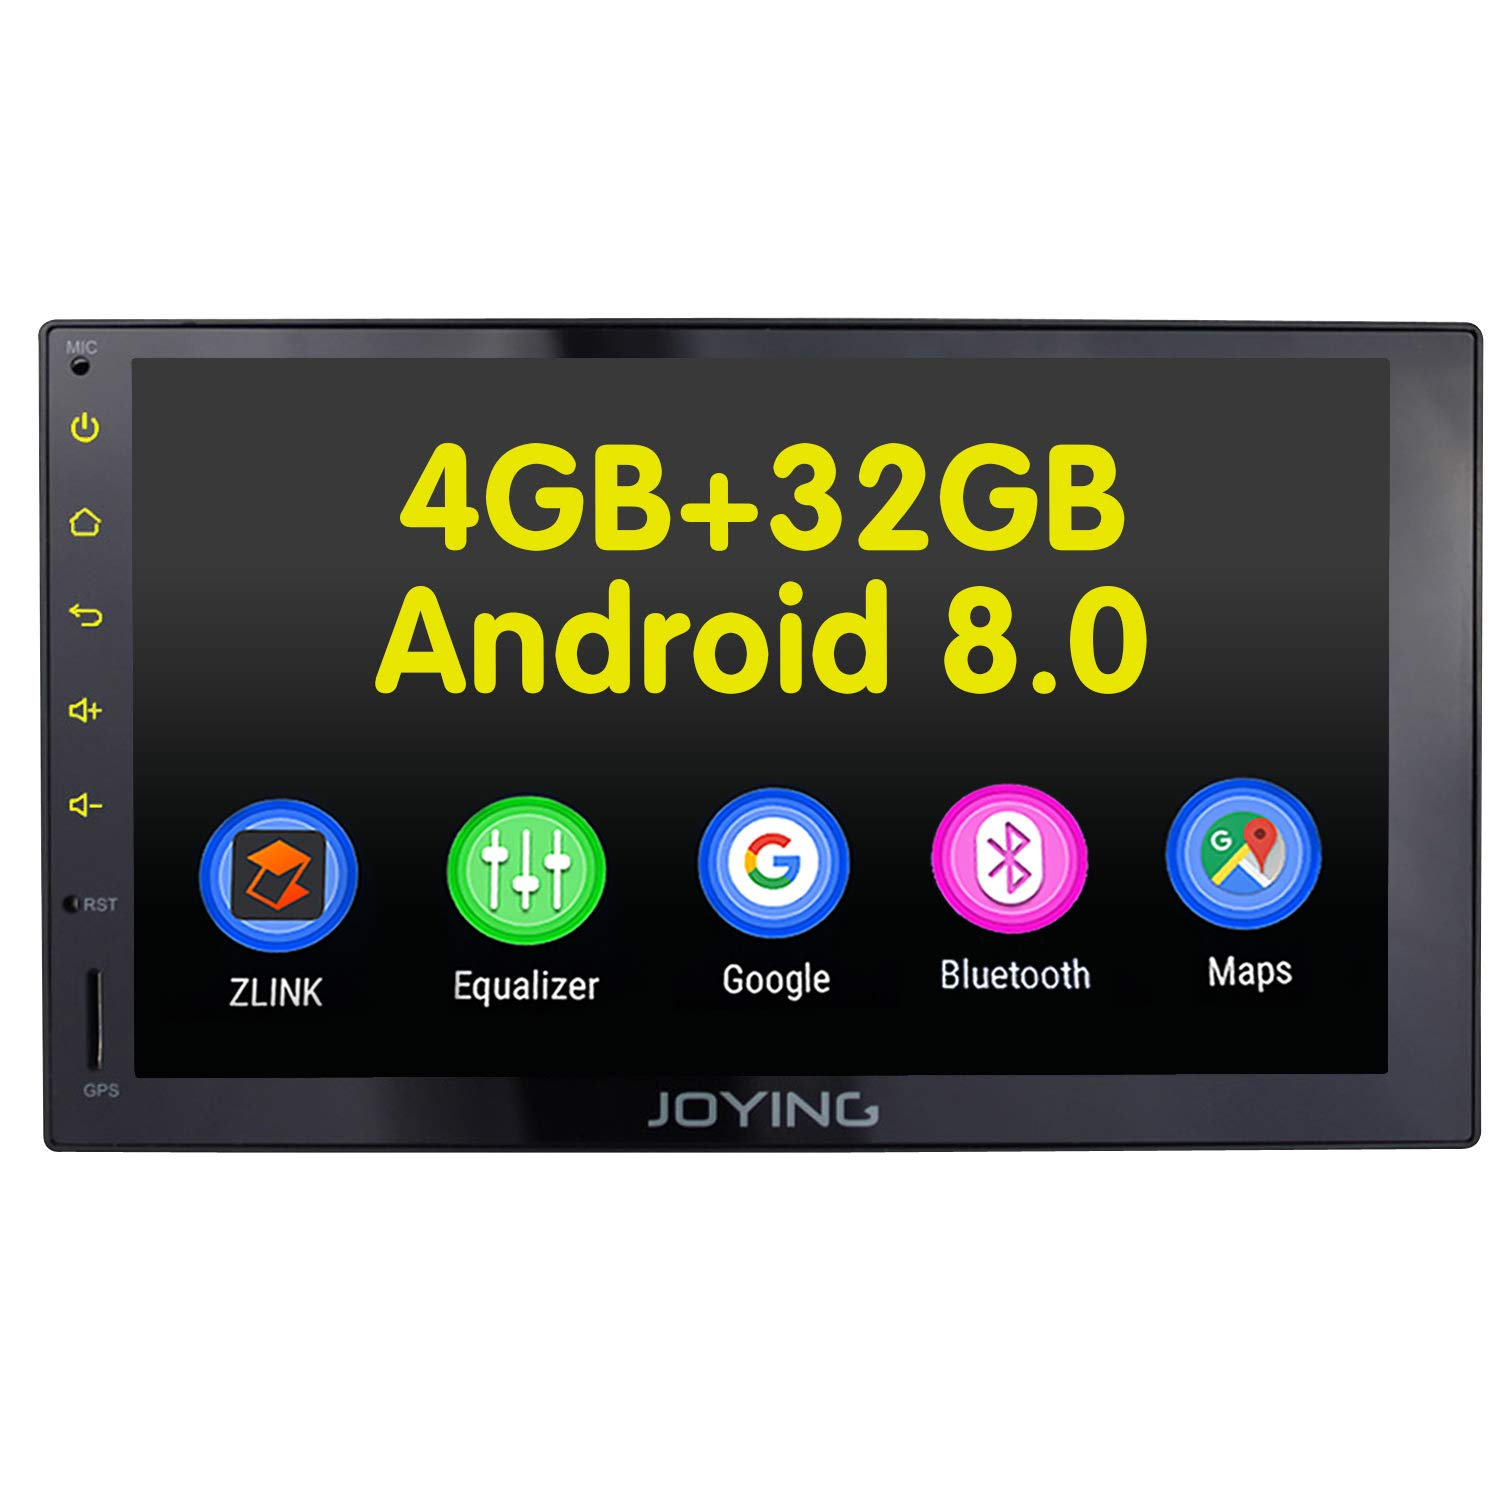 JOYING Car Radio 4GB + 32GB Android 8 0 7 inch Double Din with Zlink &  Android Auto Support Fast Boot DVR OBDII RCA Rear Camera